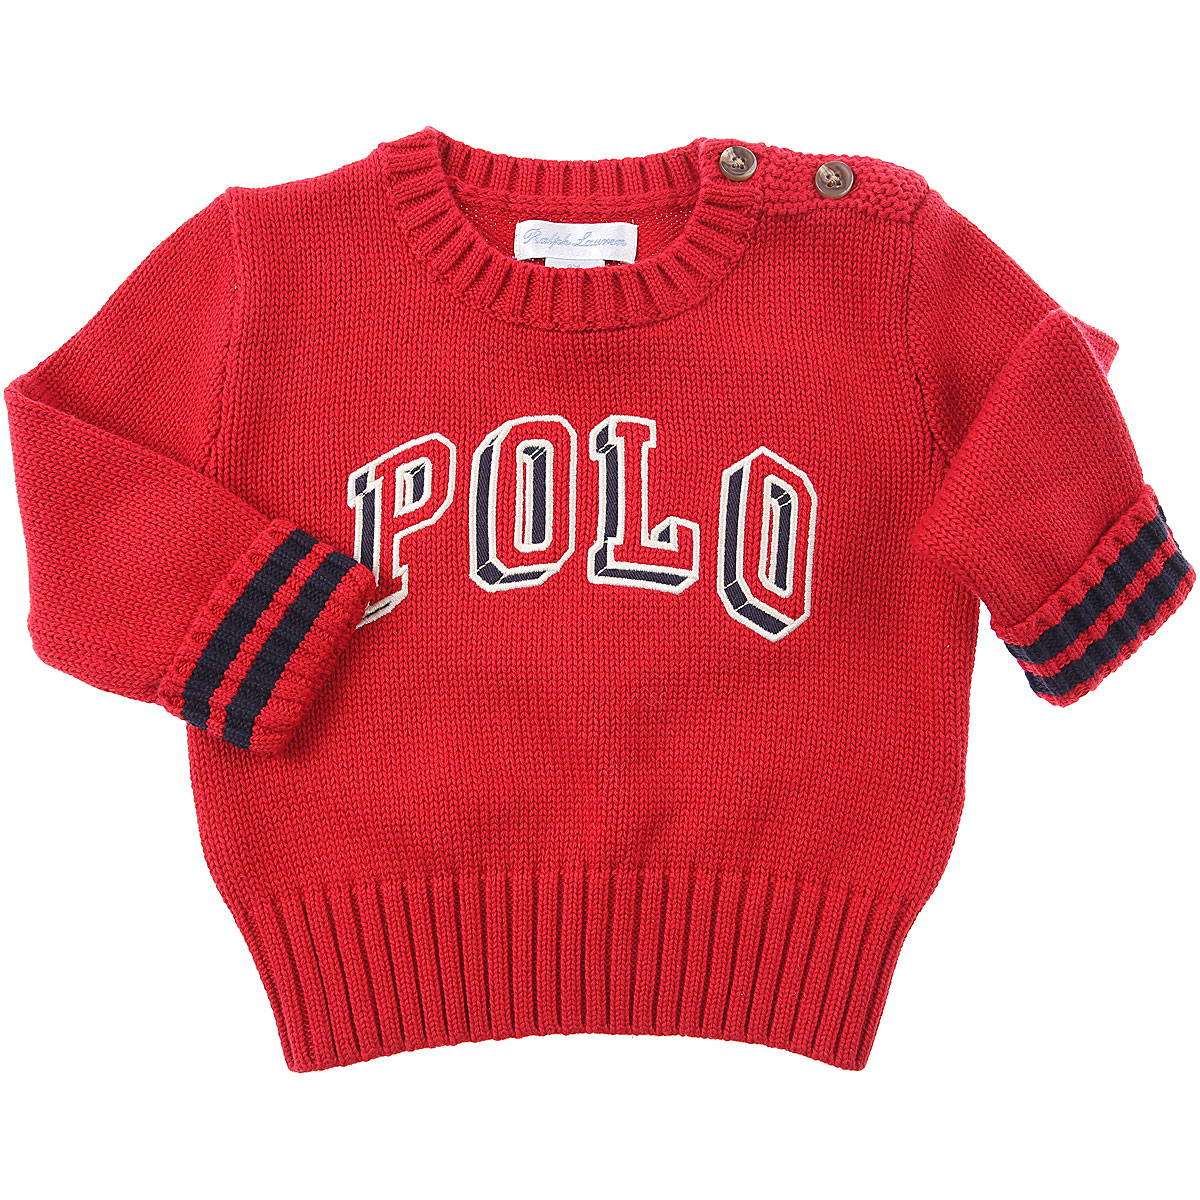 Ralph Lauren Baby Sweaters for Boys On Sale, Red, Cotton, 2019, 12 M 2Y 9M